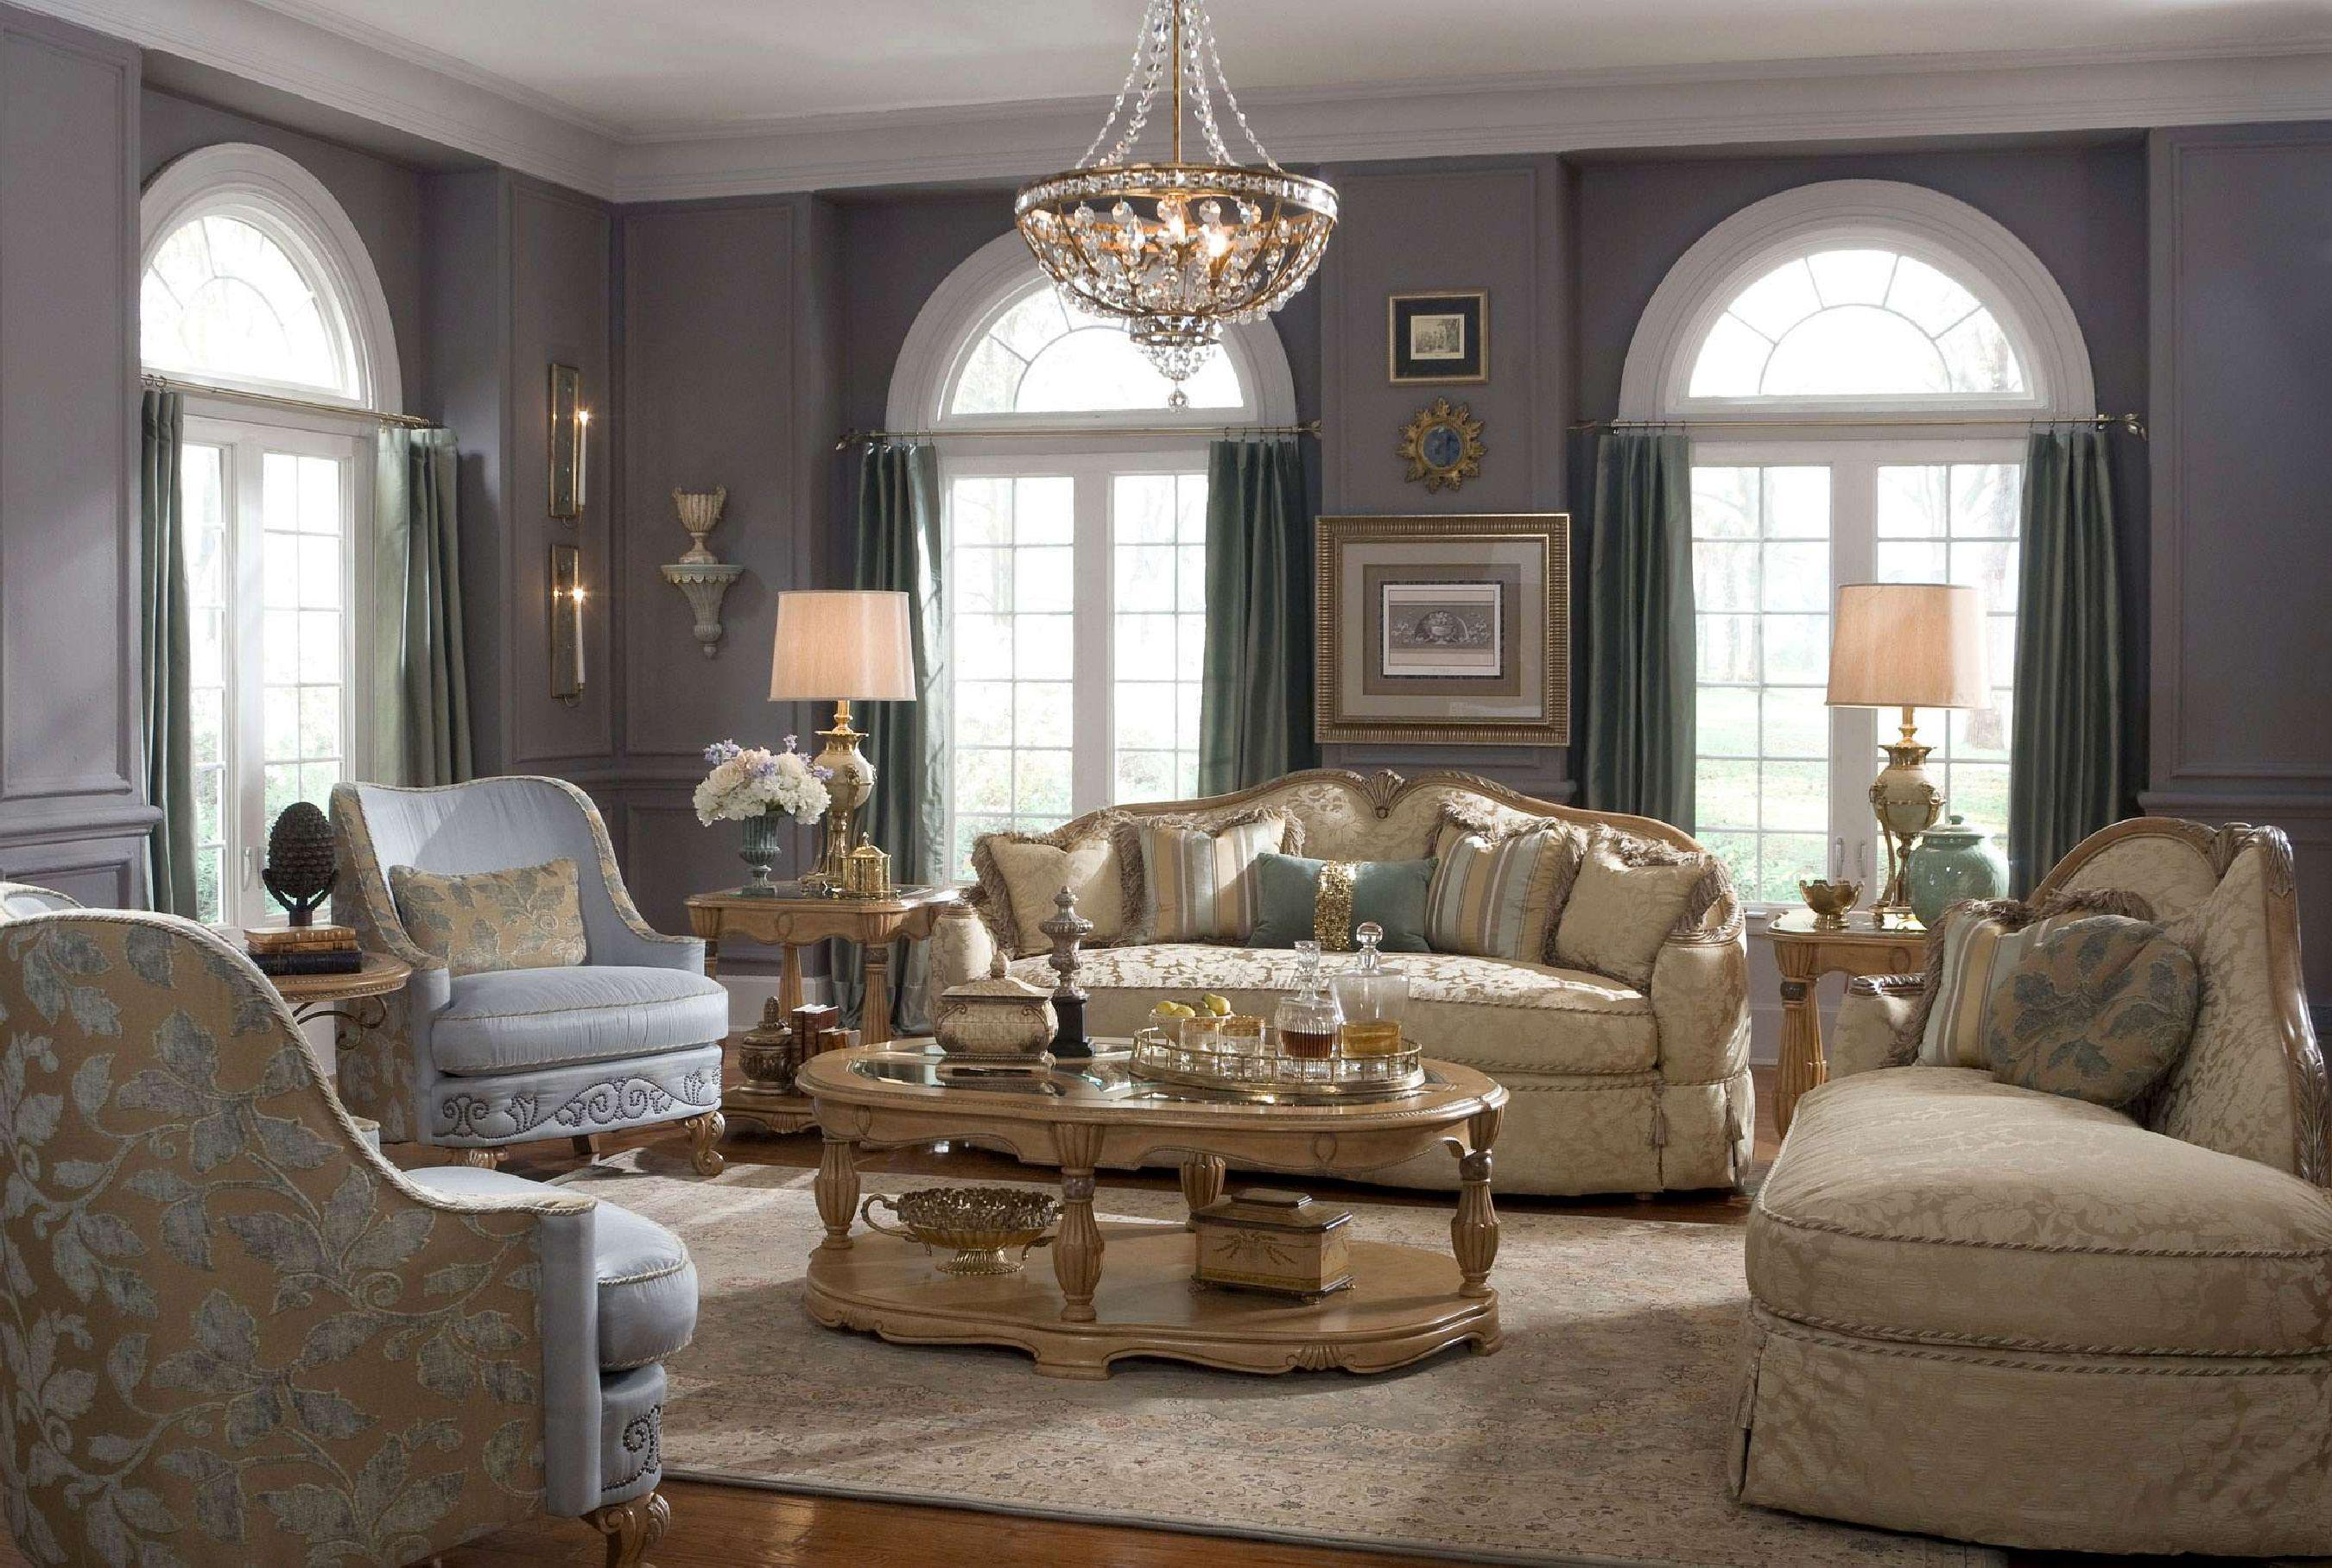 3 Benefits Of Decorating Your Home With Antiques 3